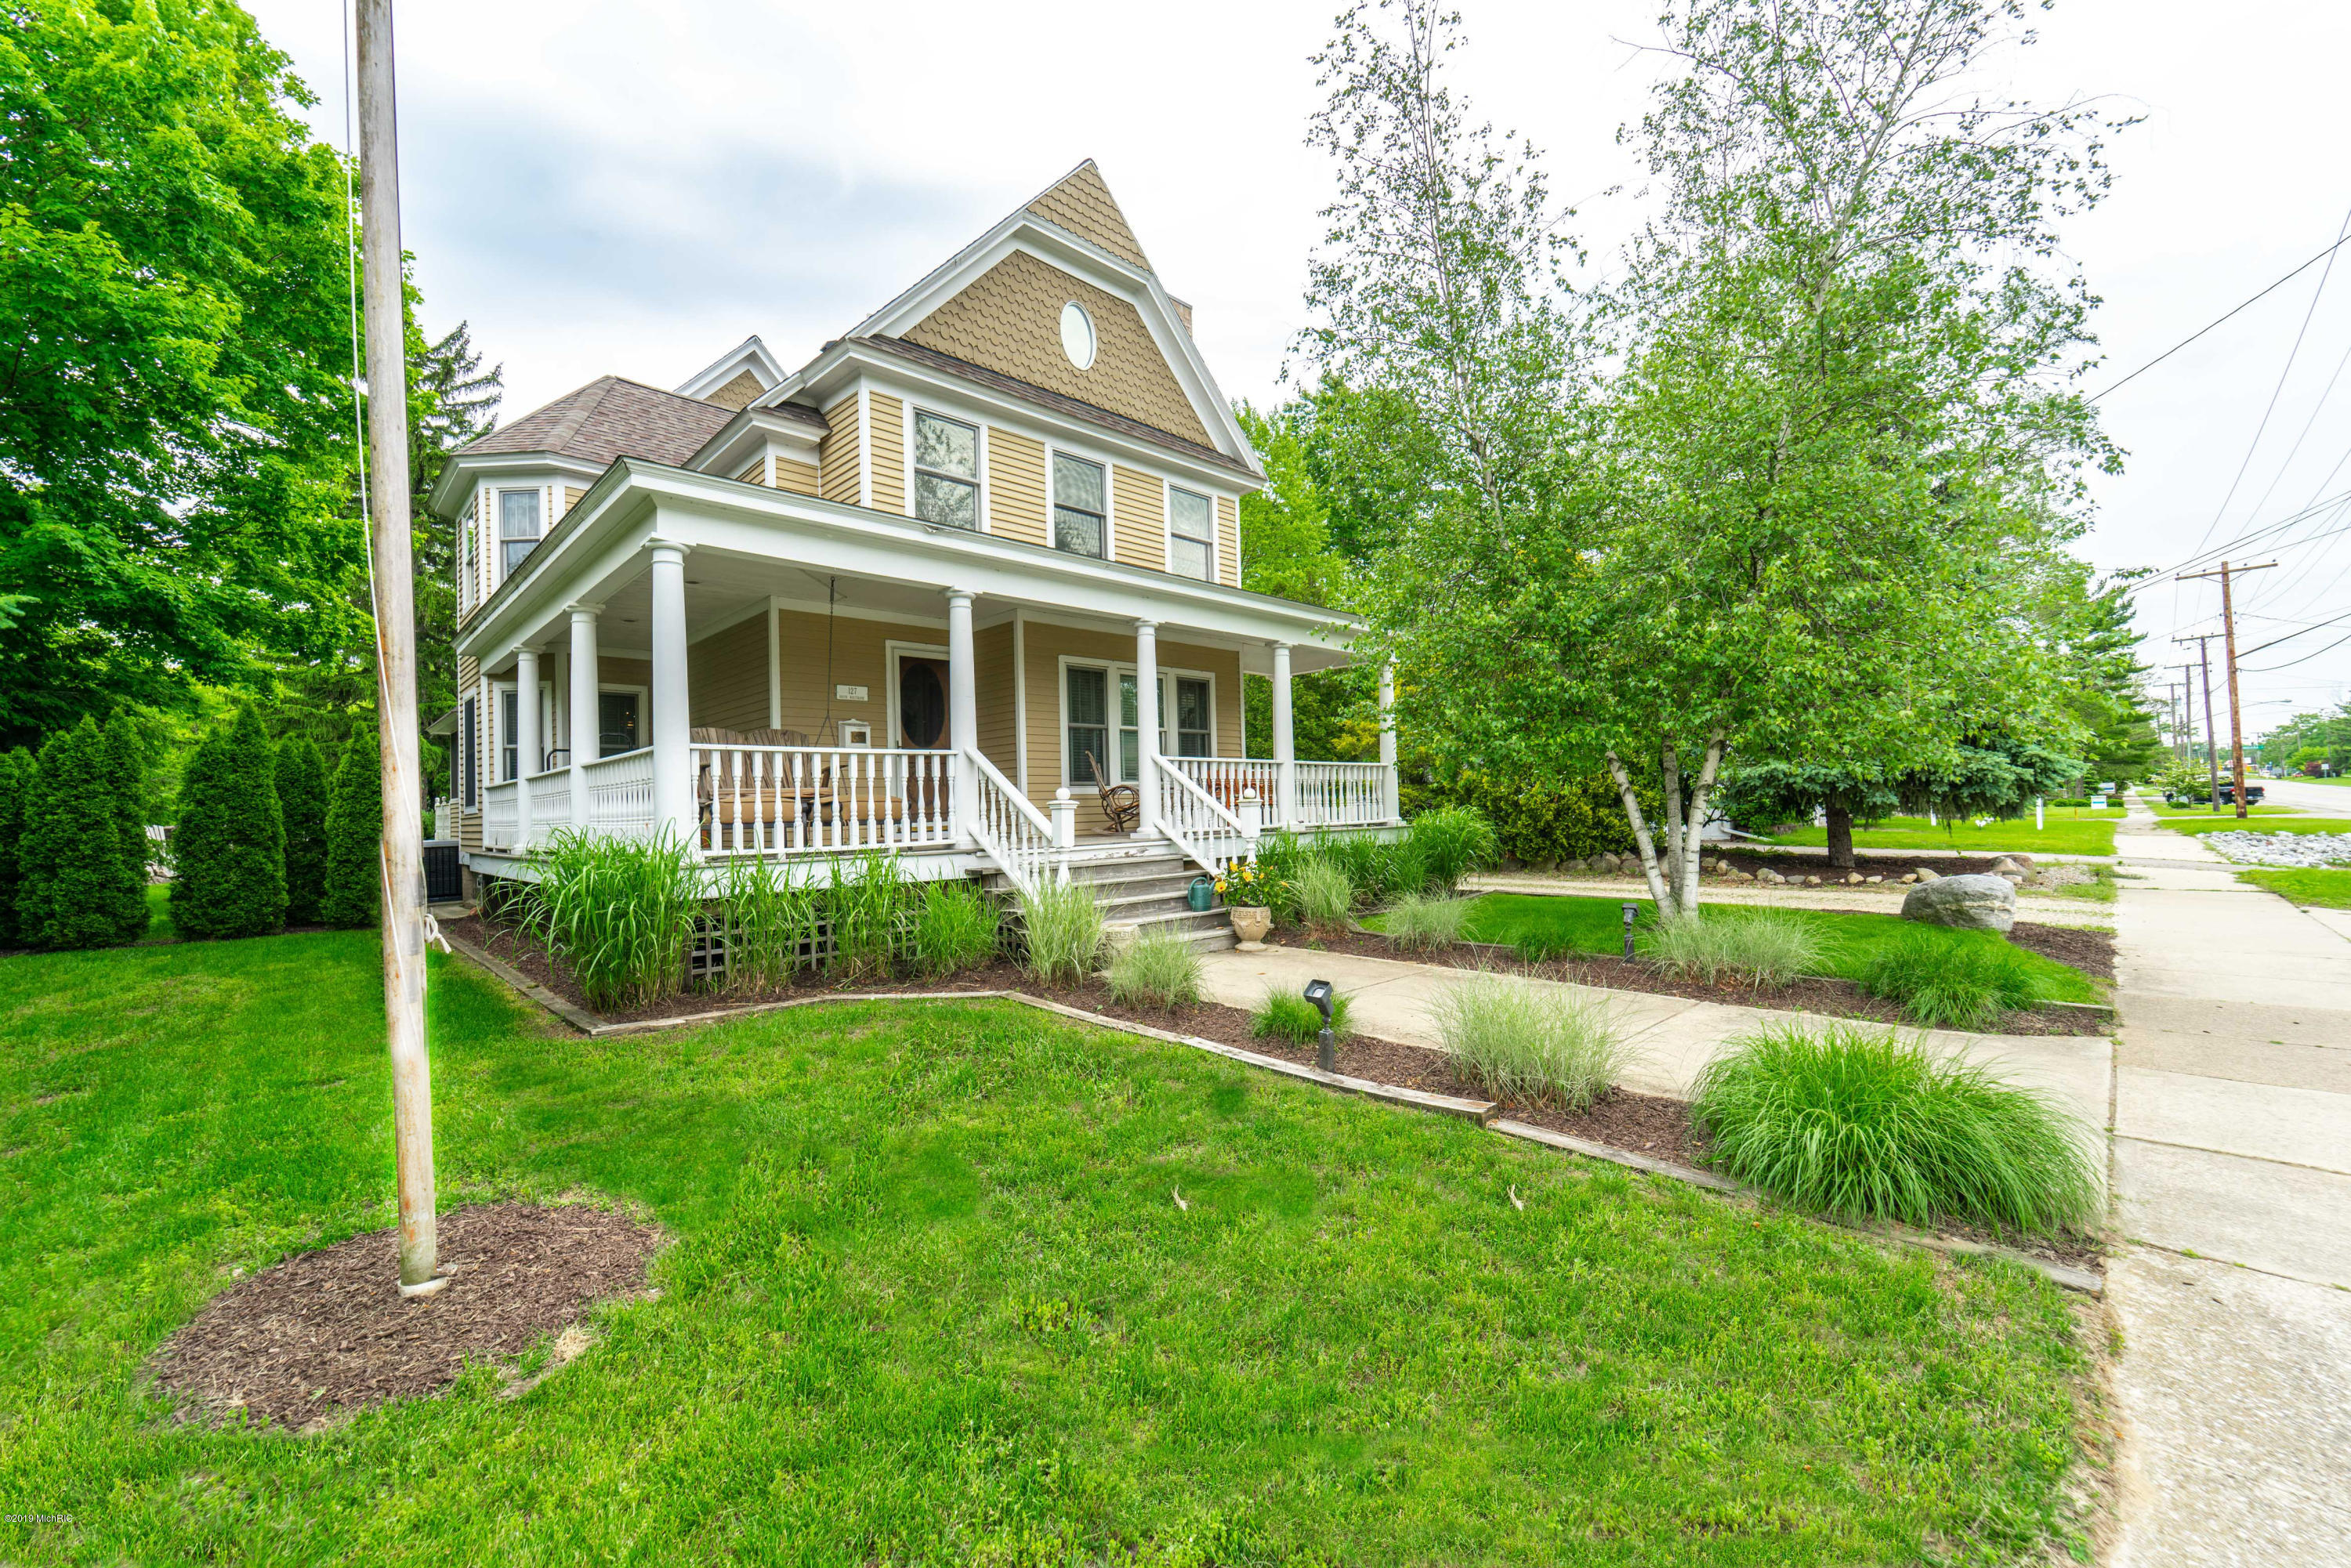 127 Whittaker Street, New Buffalo, Michigan 49117, 5 Bedrooms Bedrooms, ,3 BathroomsBathrooms,Residential,For Sale,Whittaker,19027229